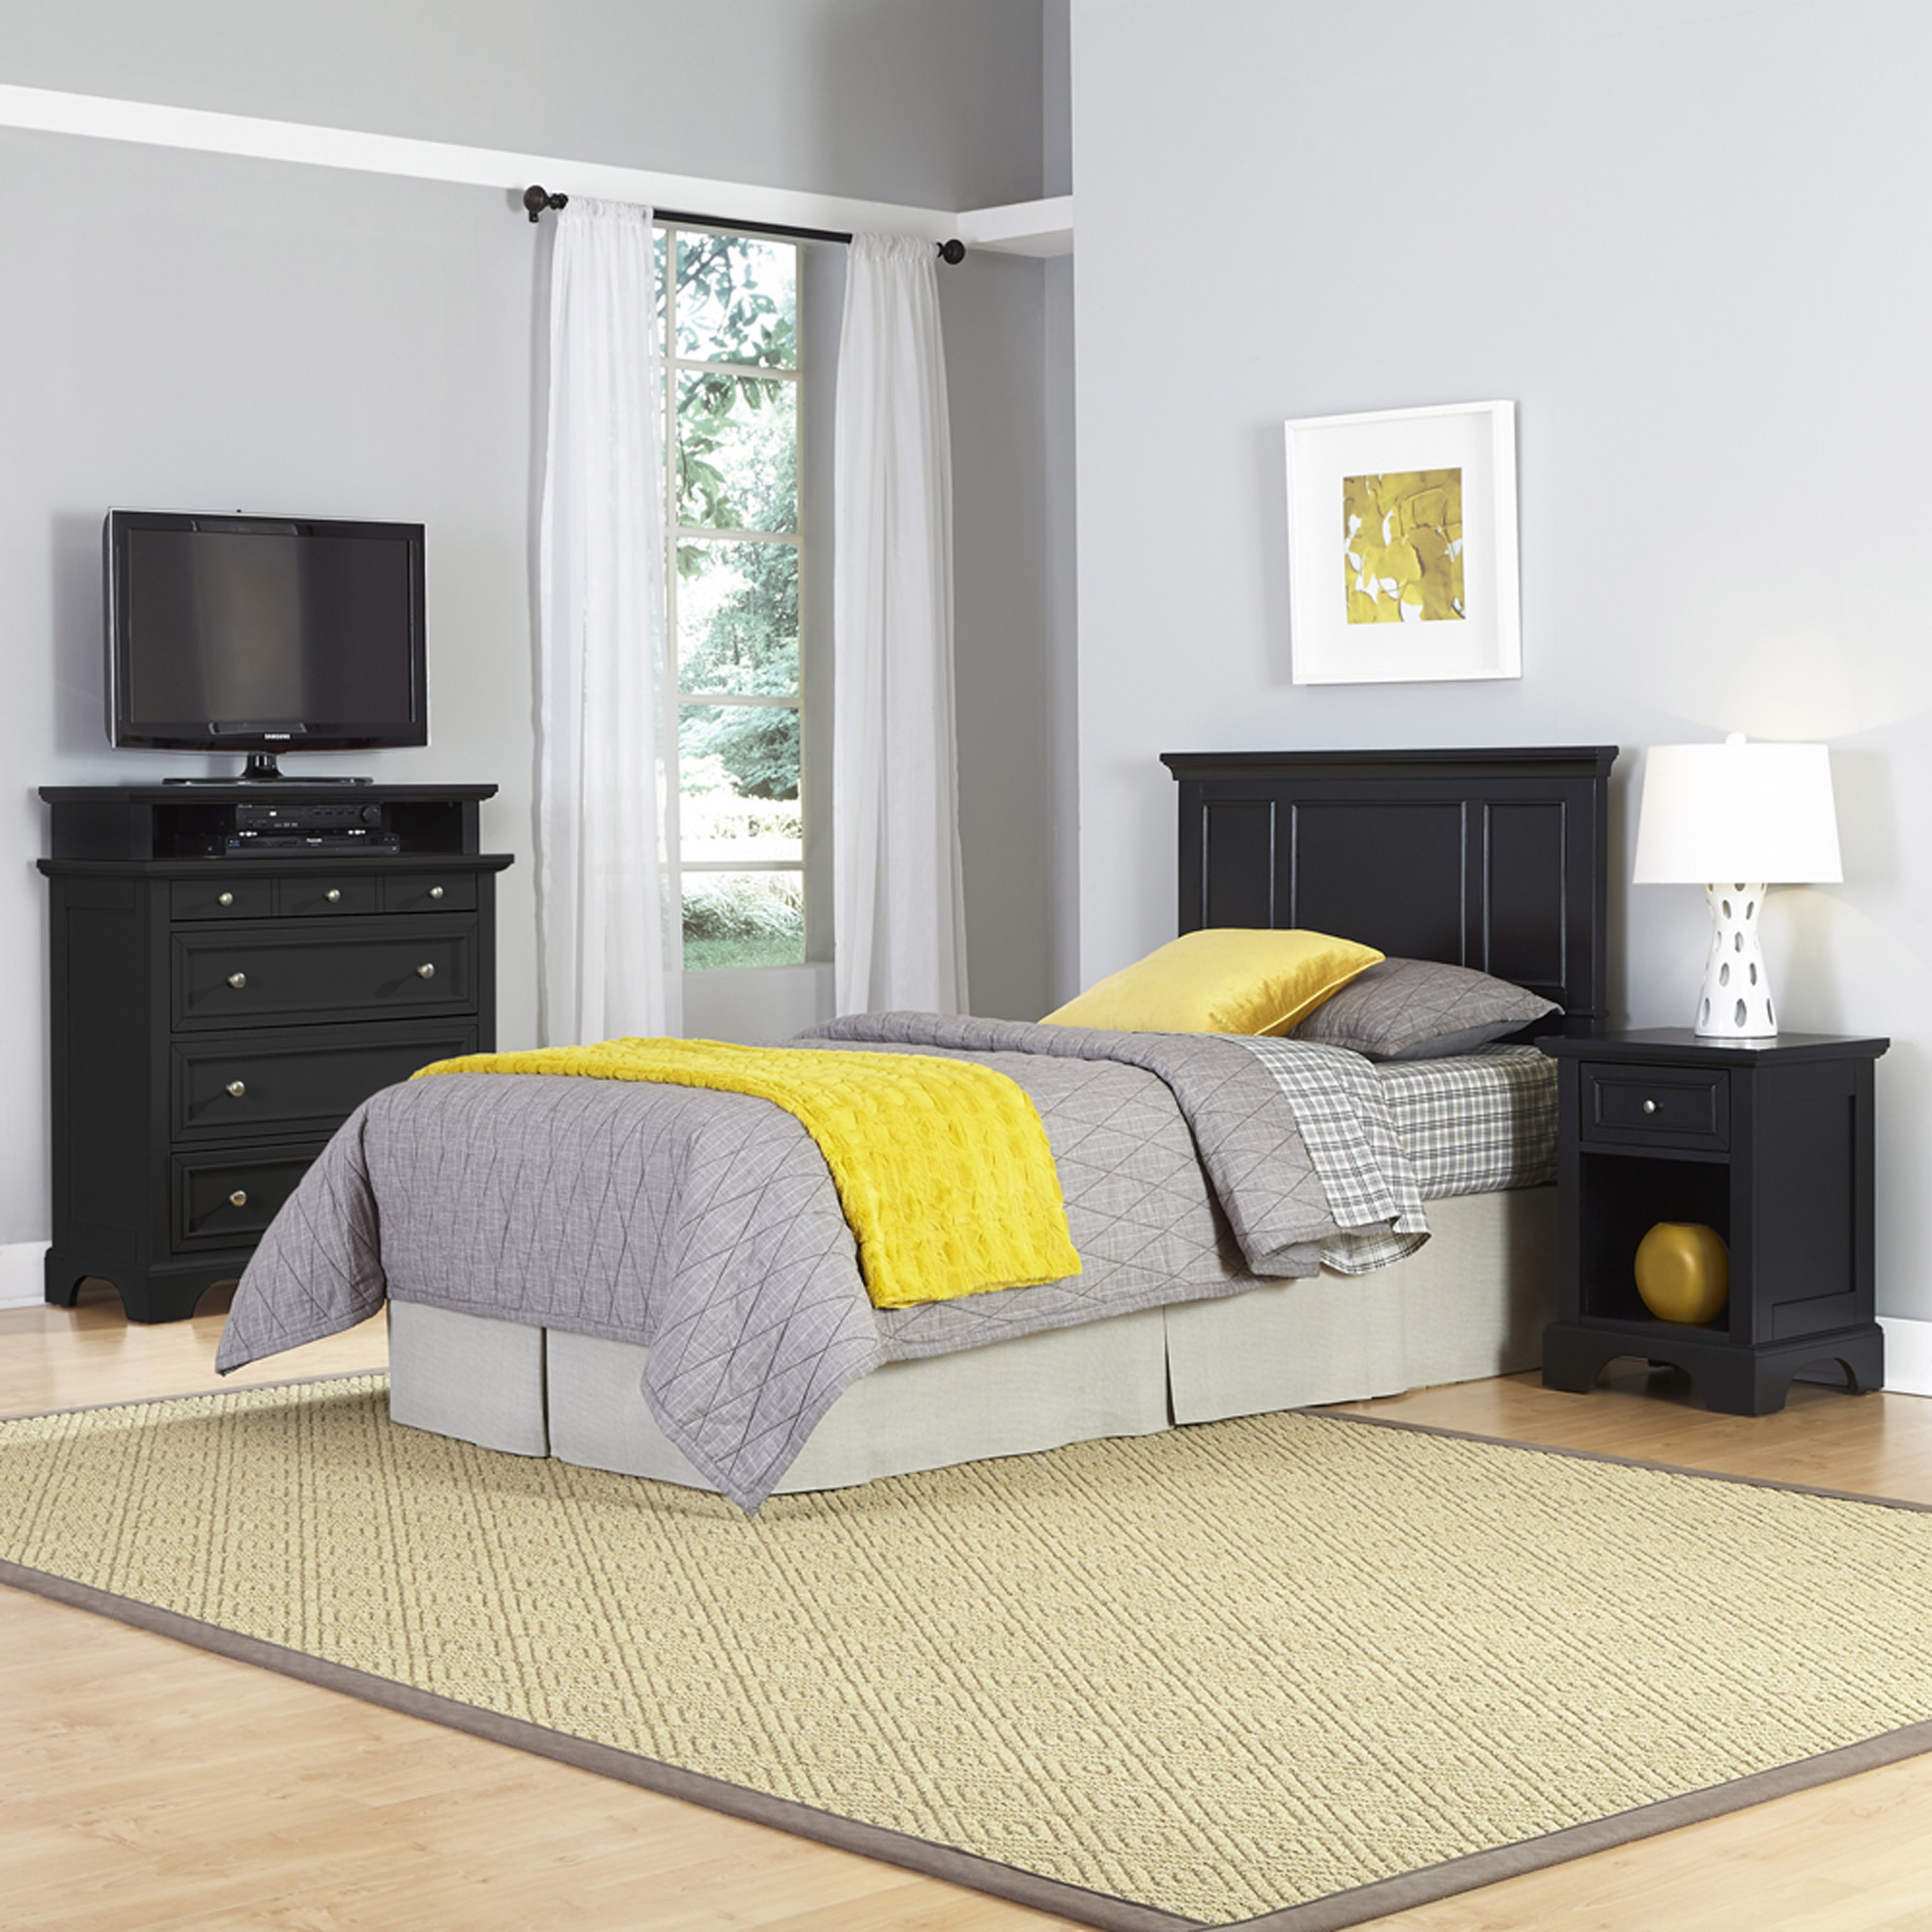 Home Styles Bedford Bedroom Furniture Collection